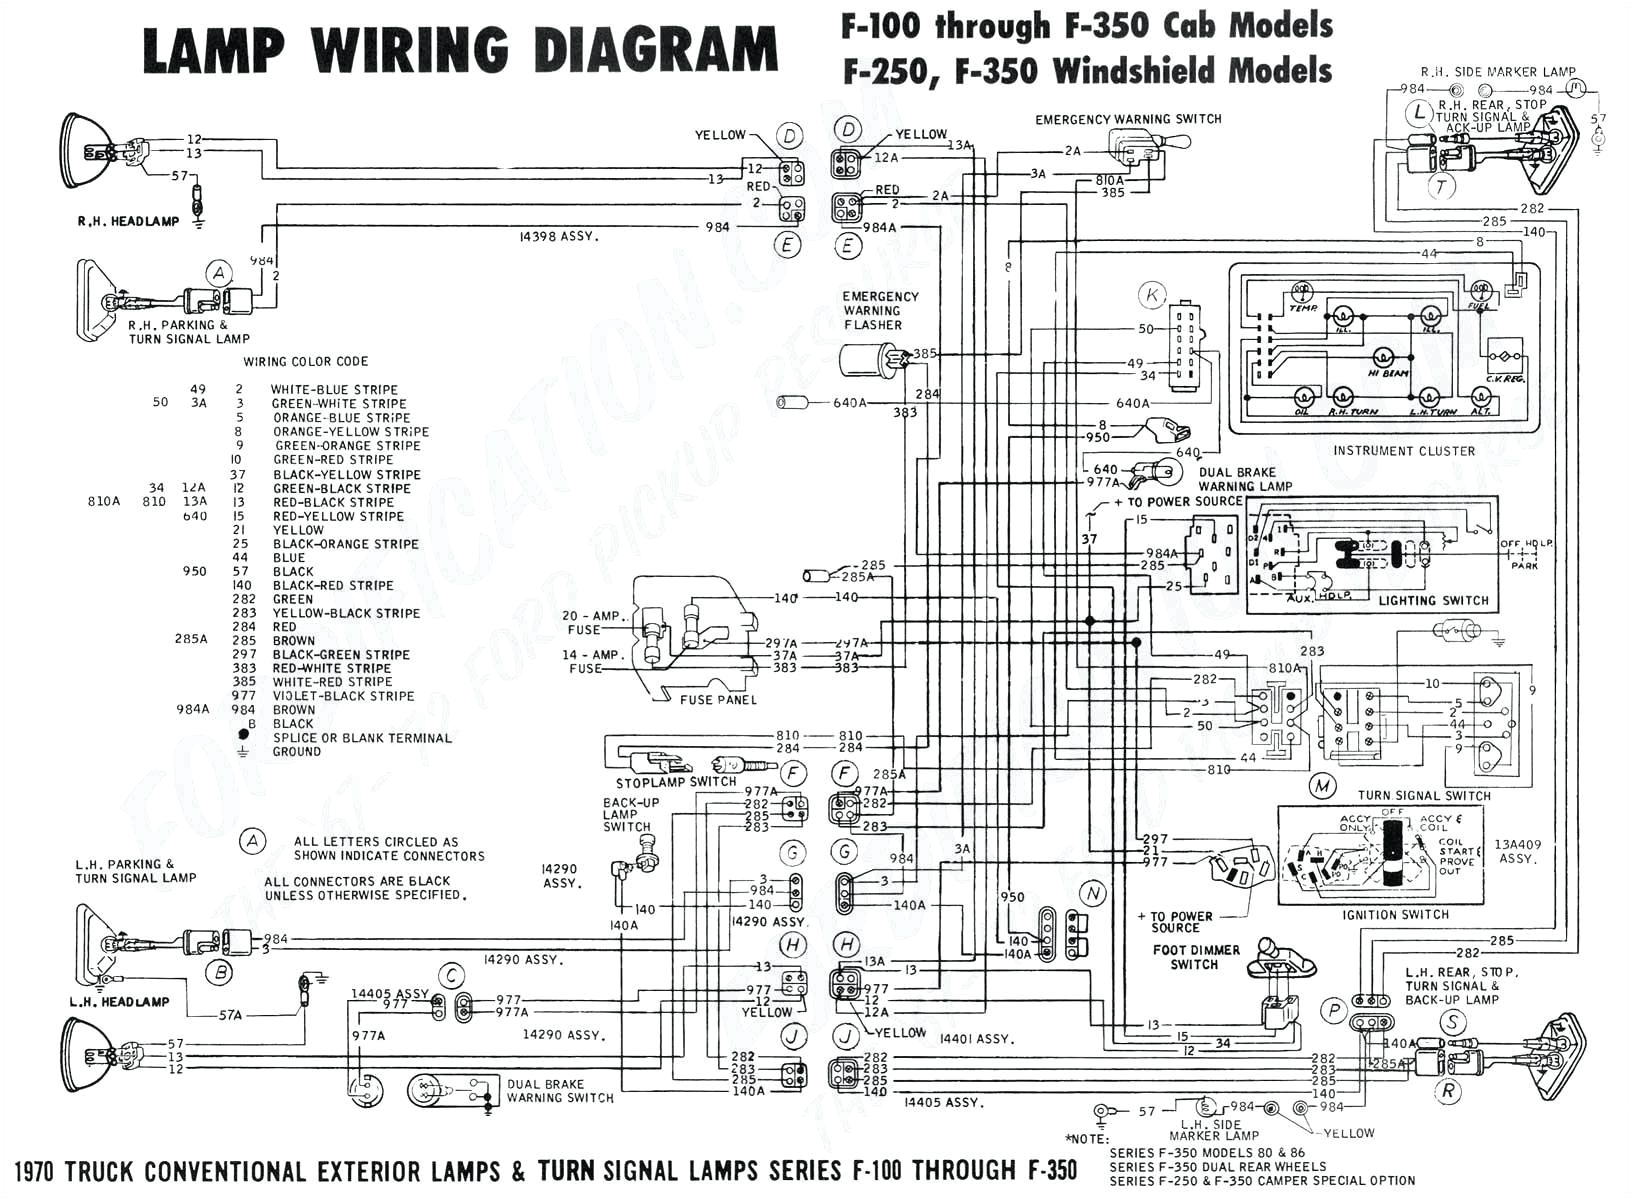 347 Volt Wiring Diagram 1 3l Engine Diagram Wiring Diagram Completed